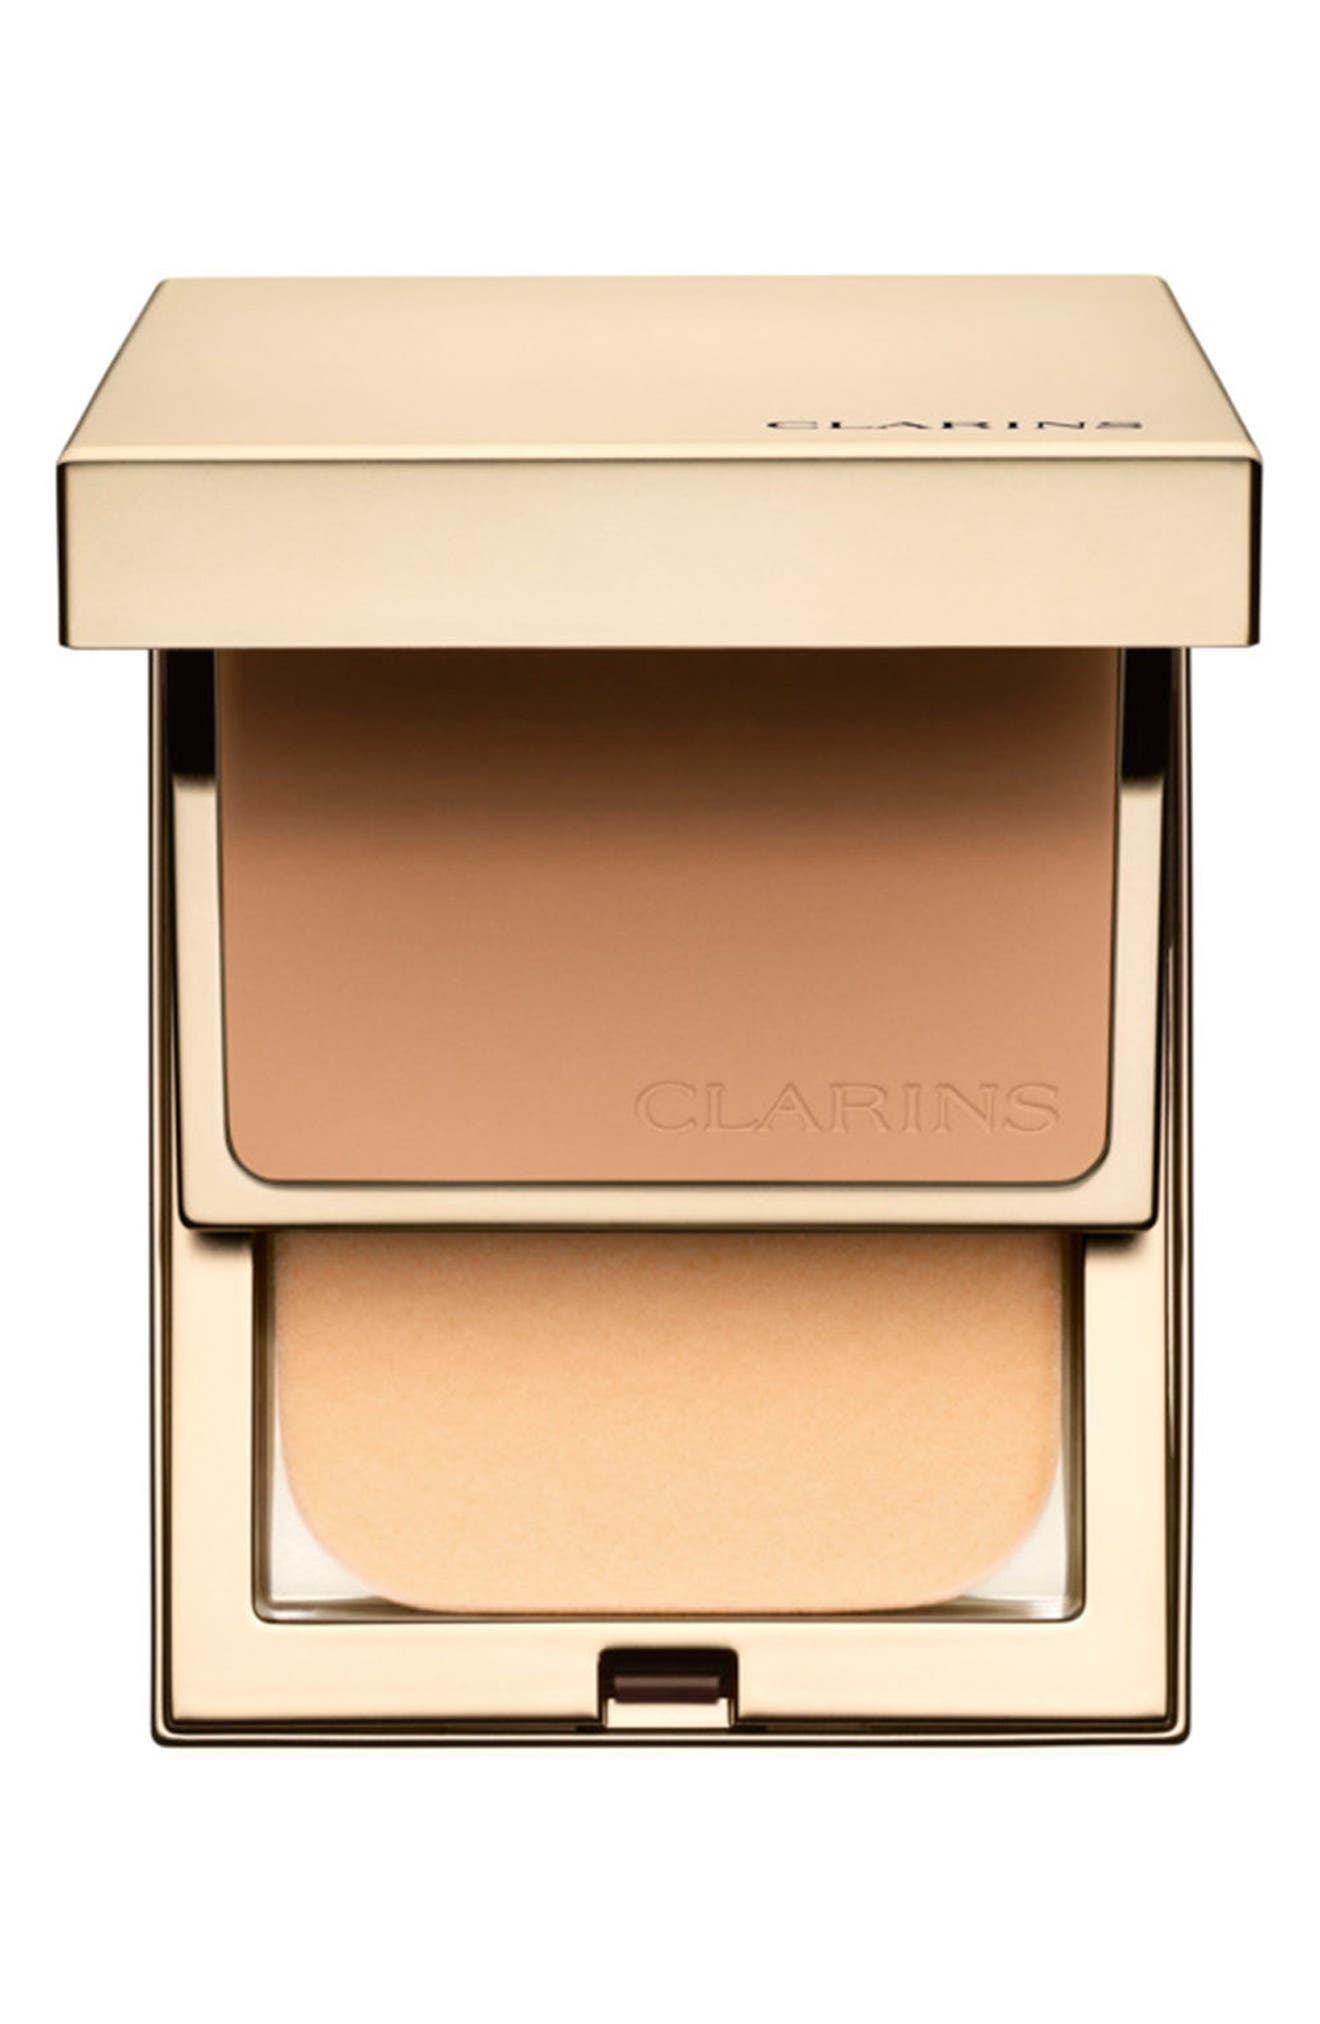 Main Image - Clarins Everlasting Compact Foundation SPF 9